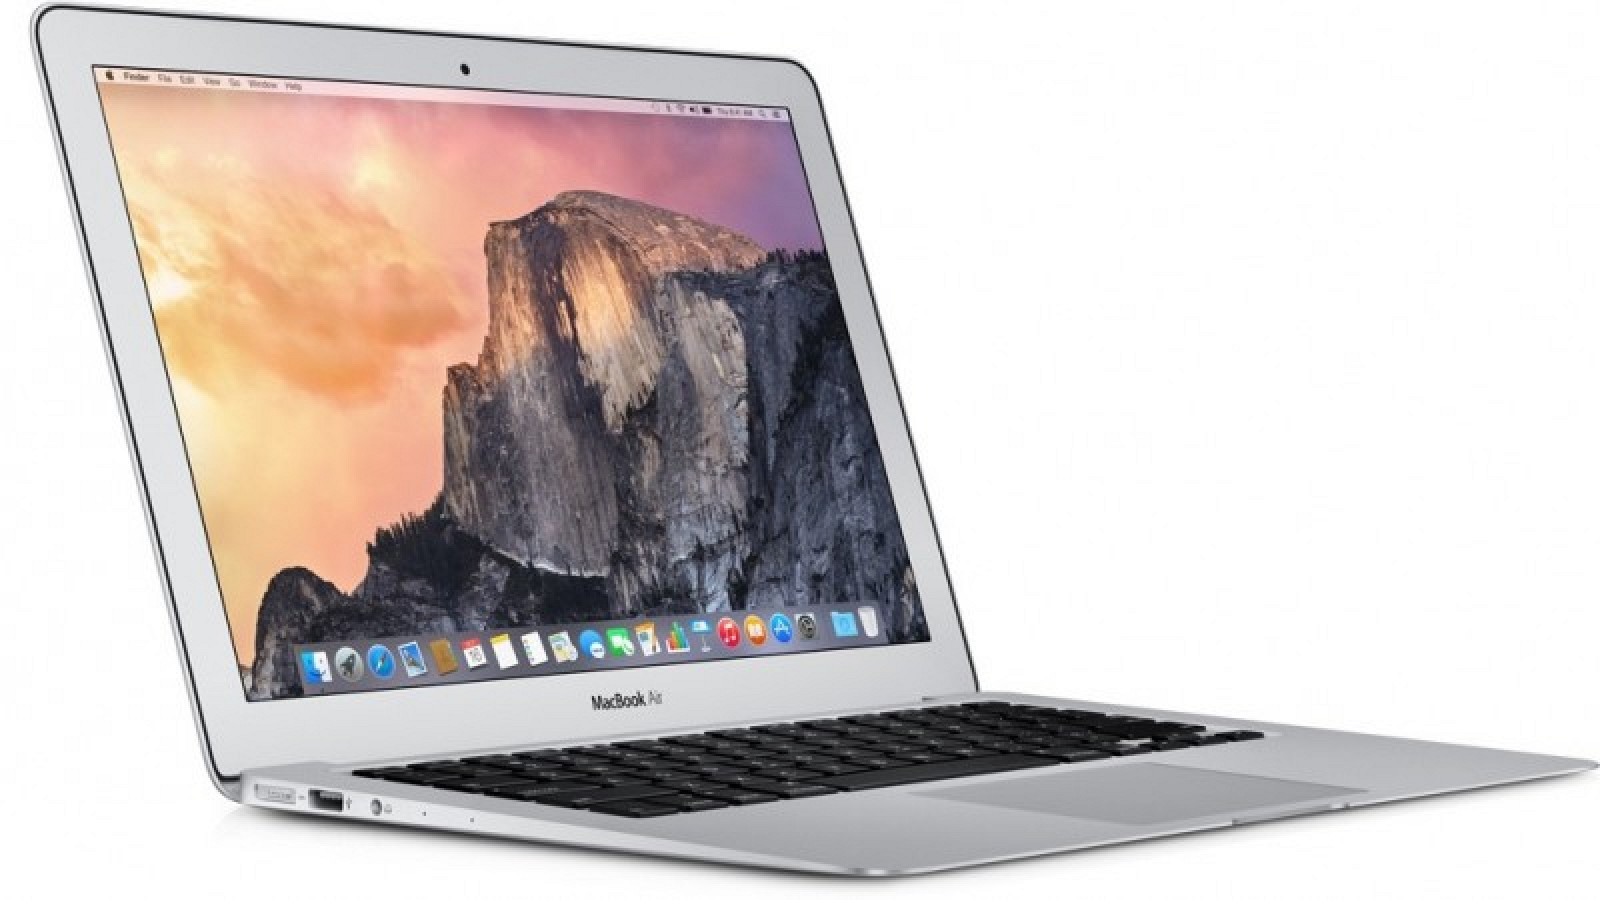 MacBook Air kopen